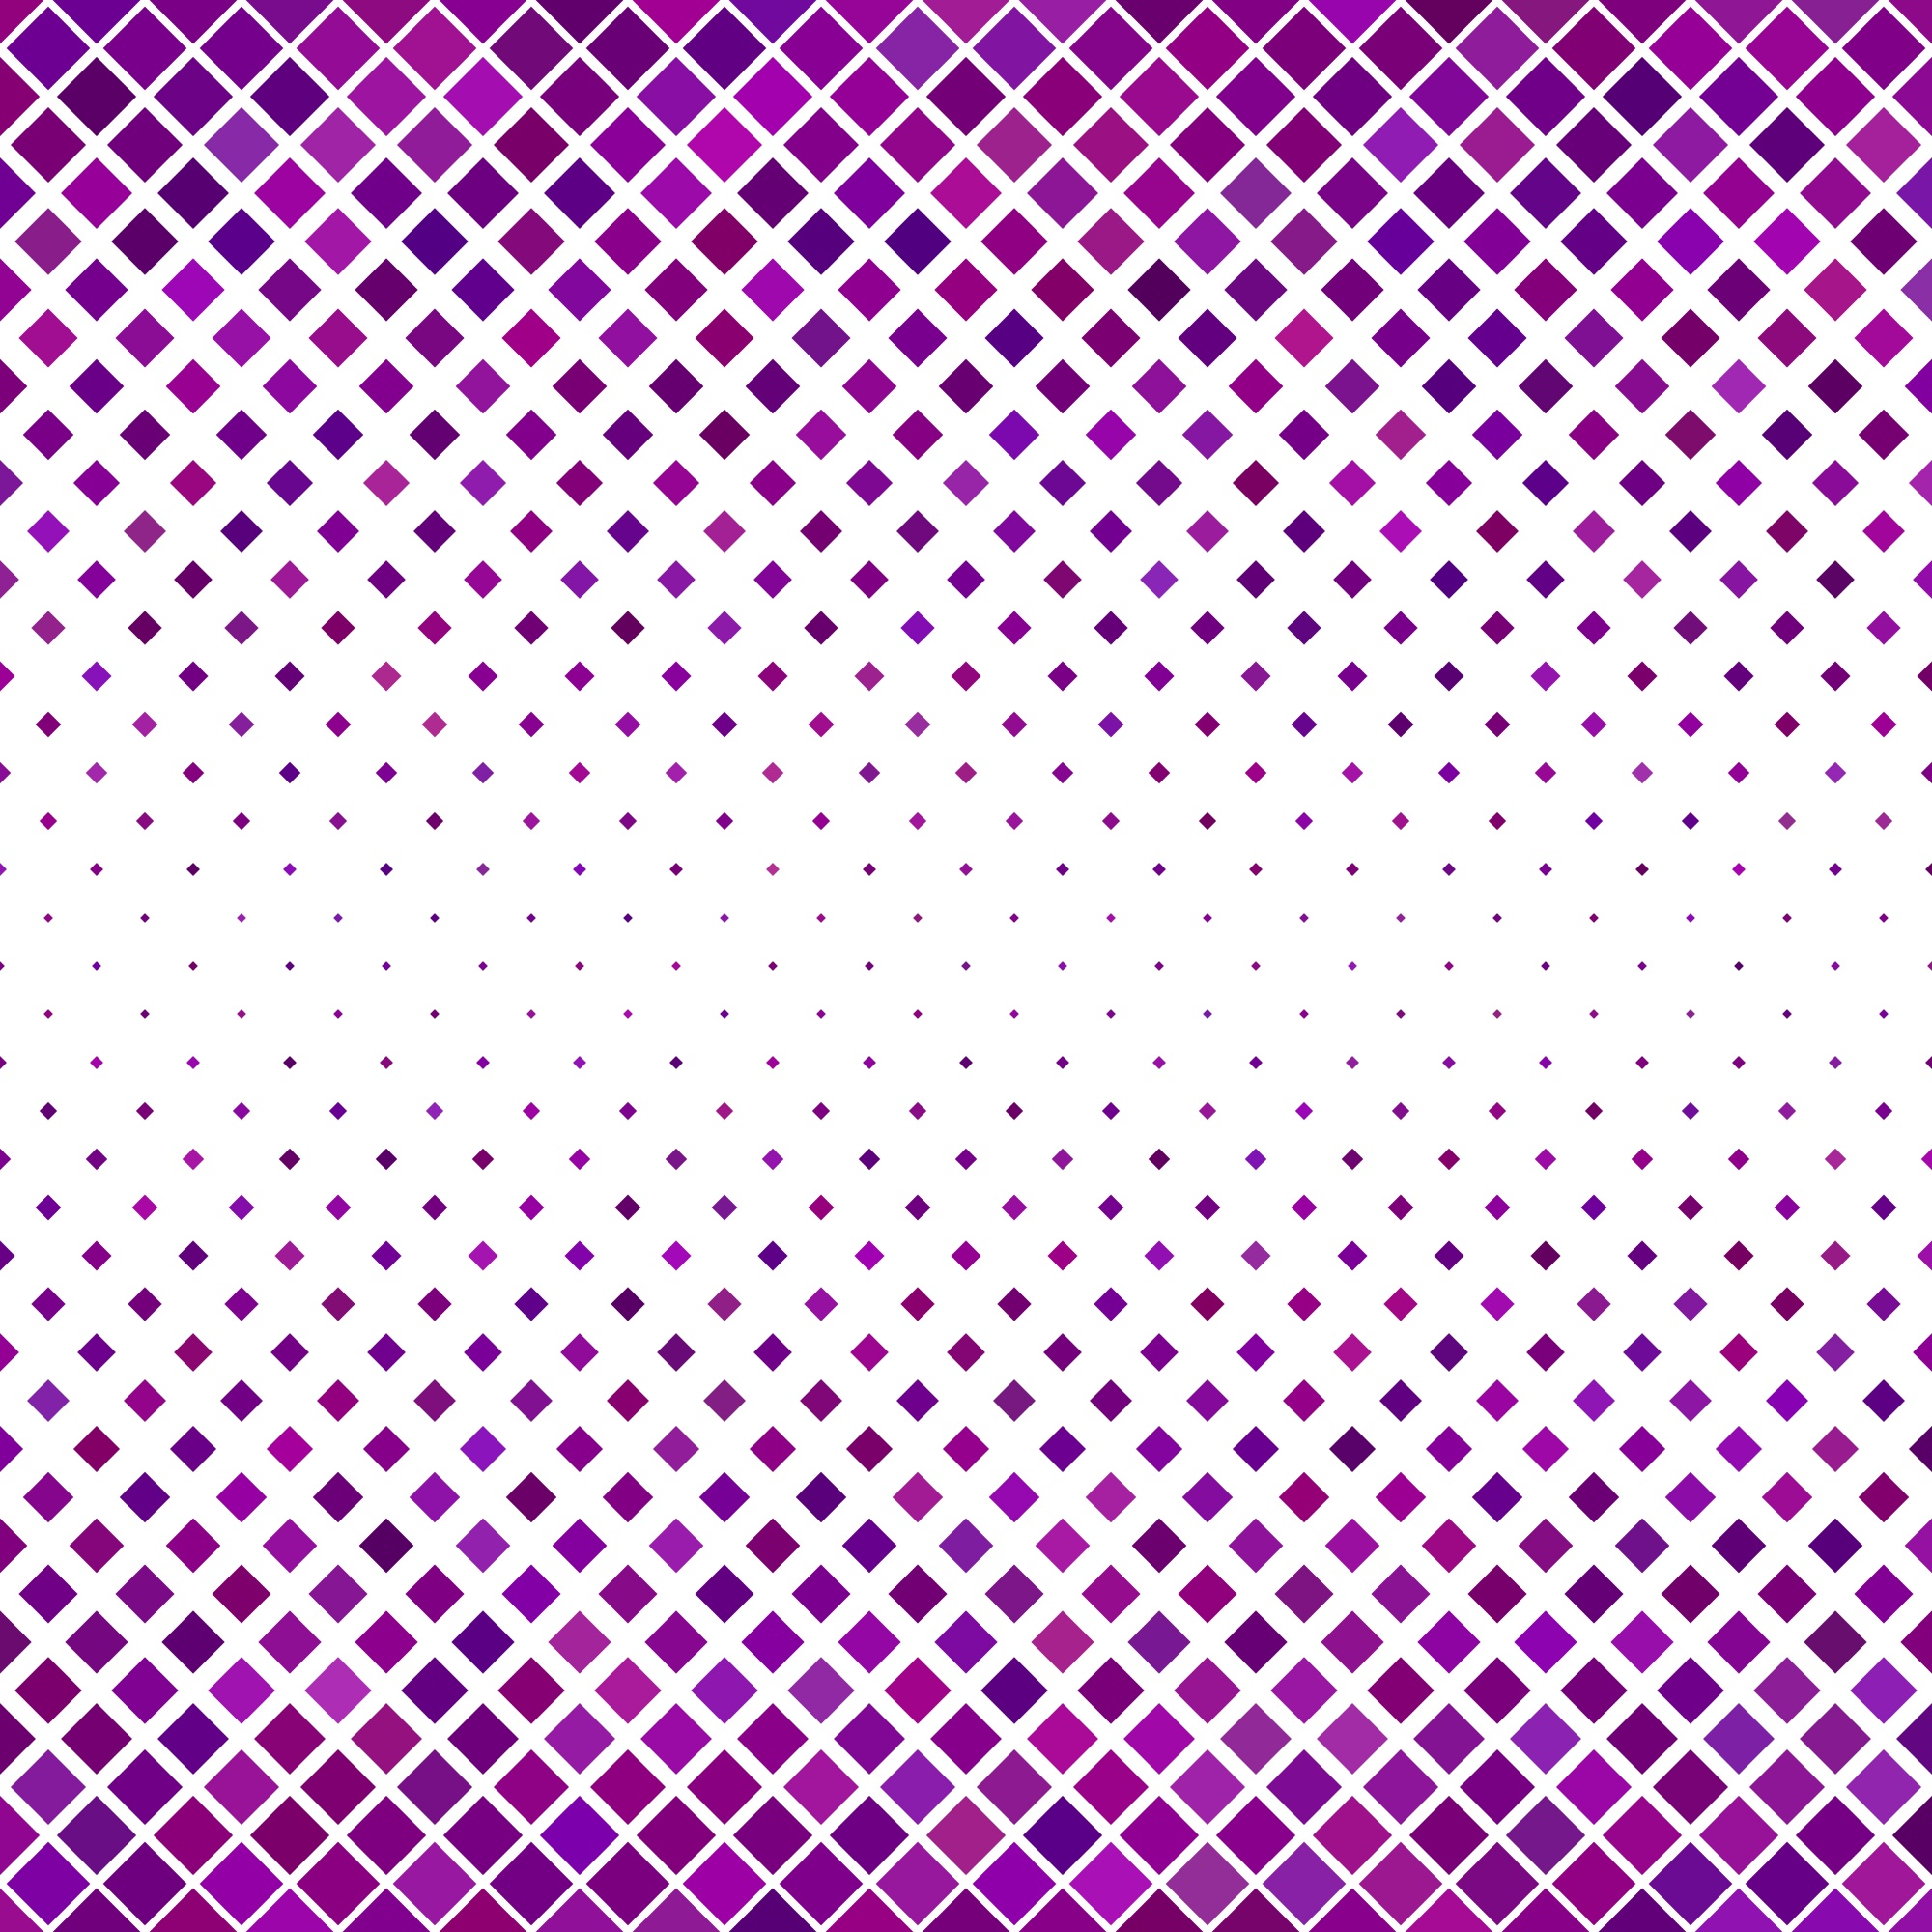 Diagonal square pattern background - geometric vector graphic from purple toned squares